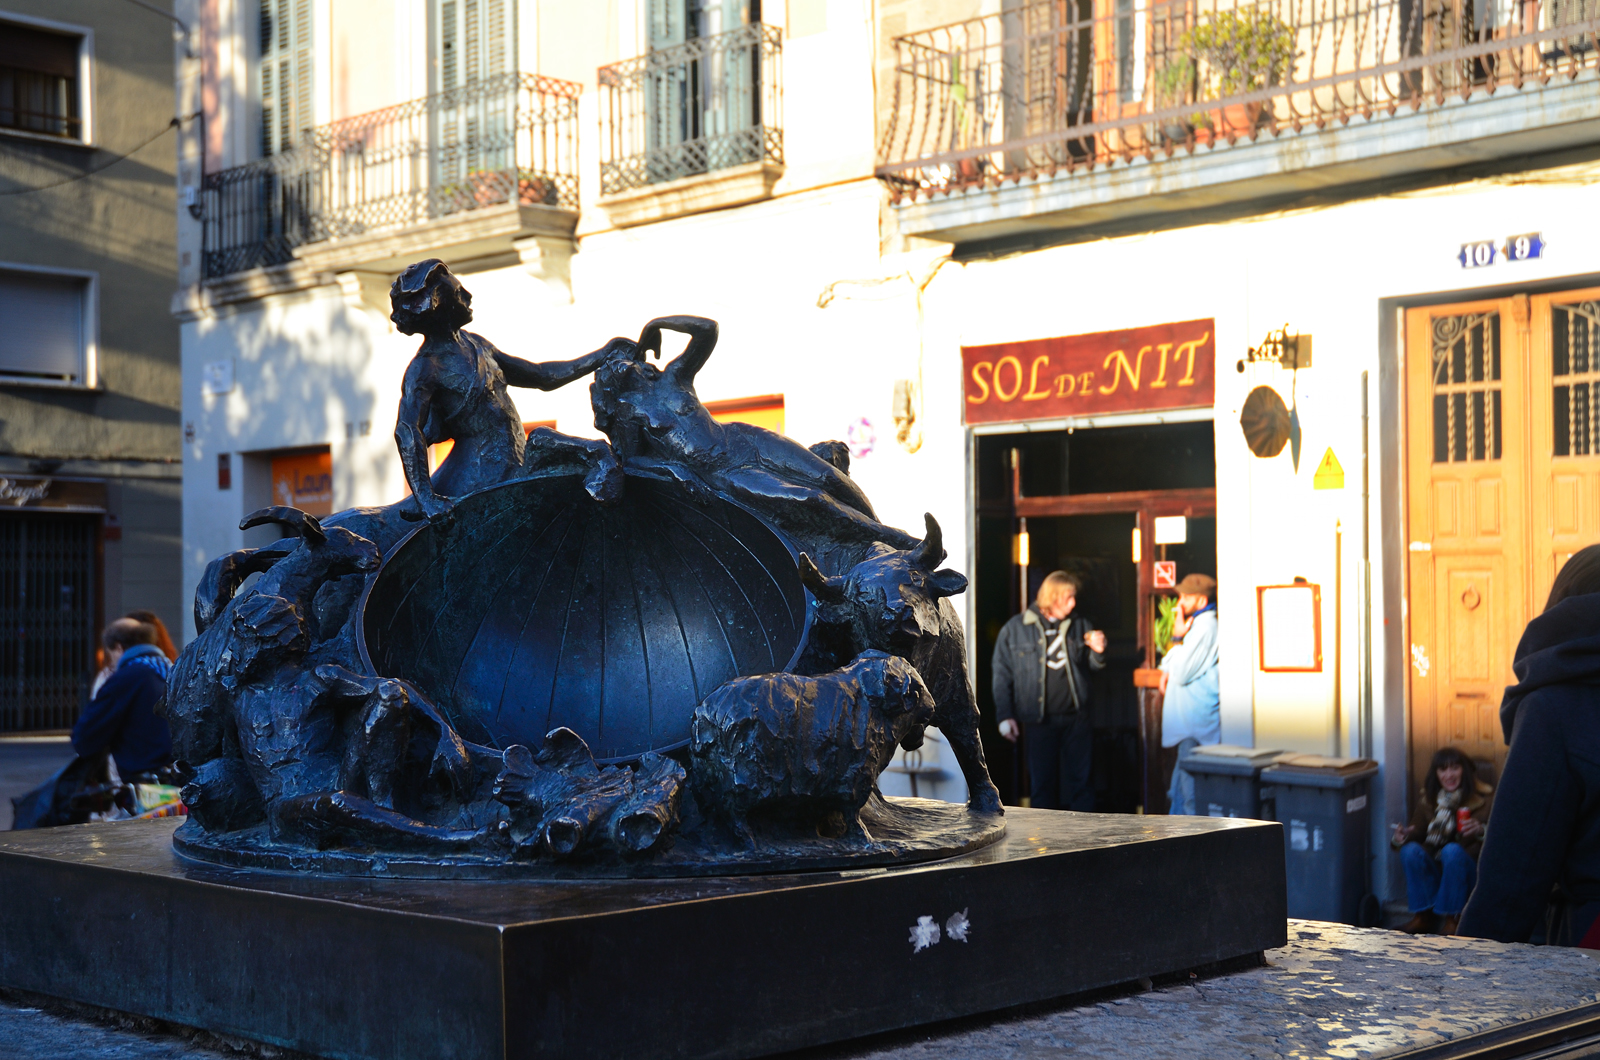 Astrolabe - Sculptural group by Joaquim Camps at Plaça del Sol, Gracia quarter, Barcelona